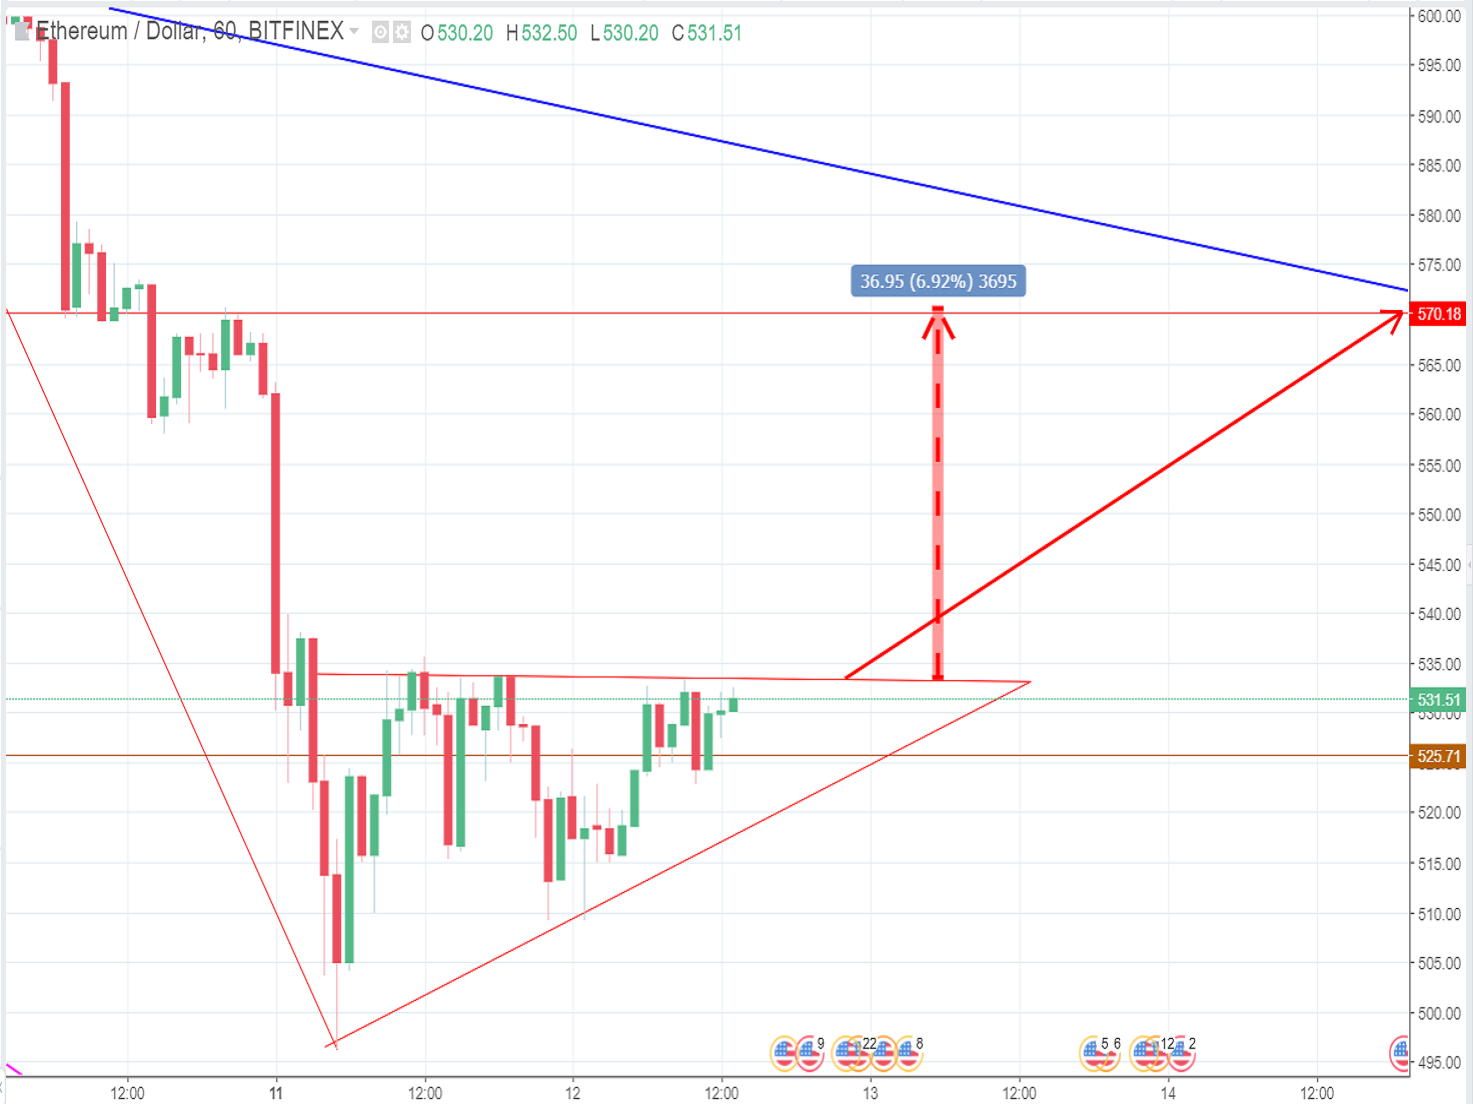 ETH price Tuesday (June 12th): Waiting for a bullish breakout?